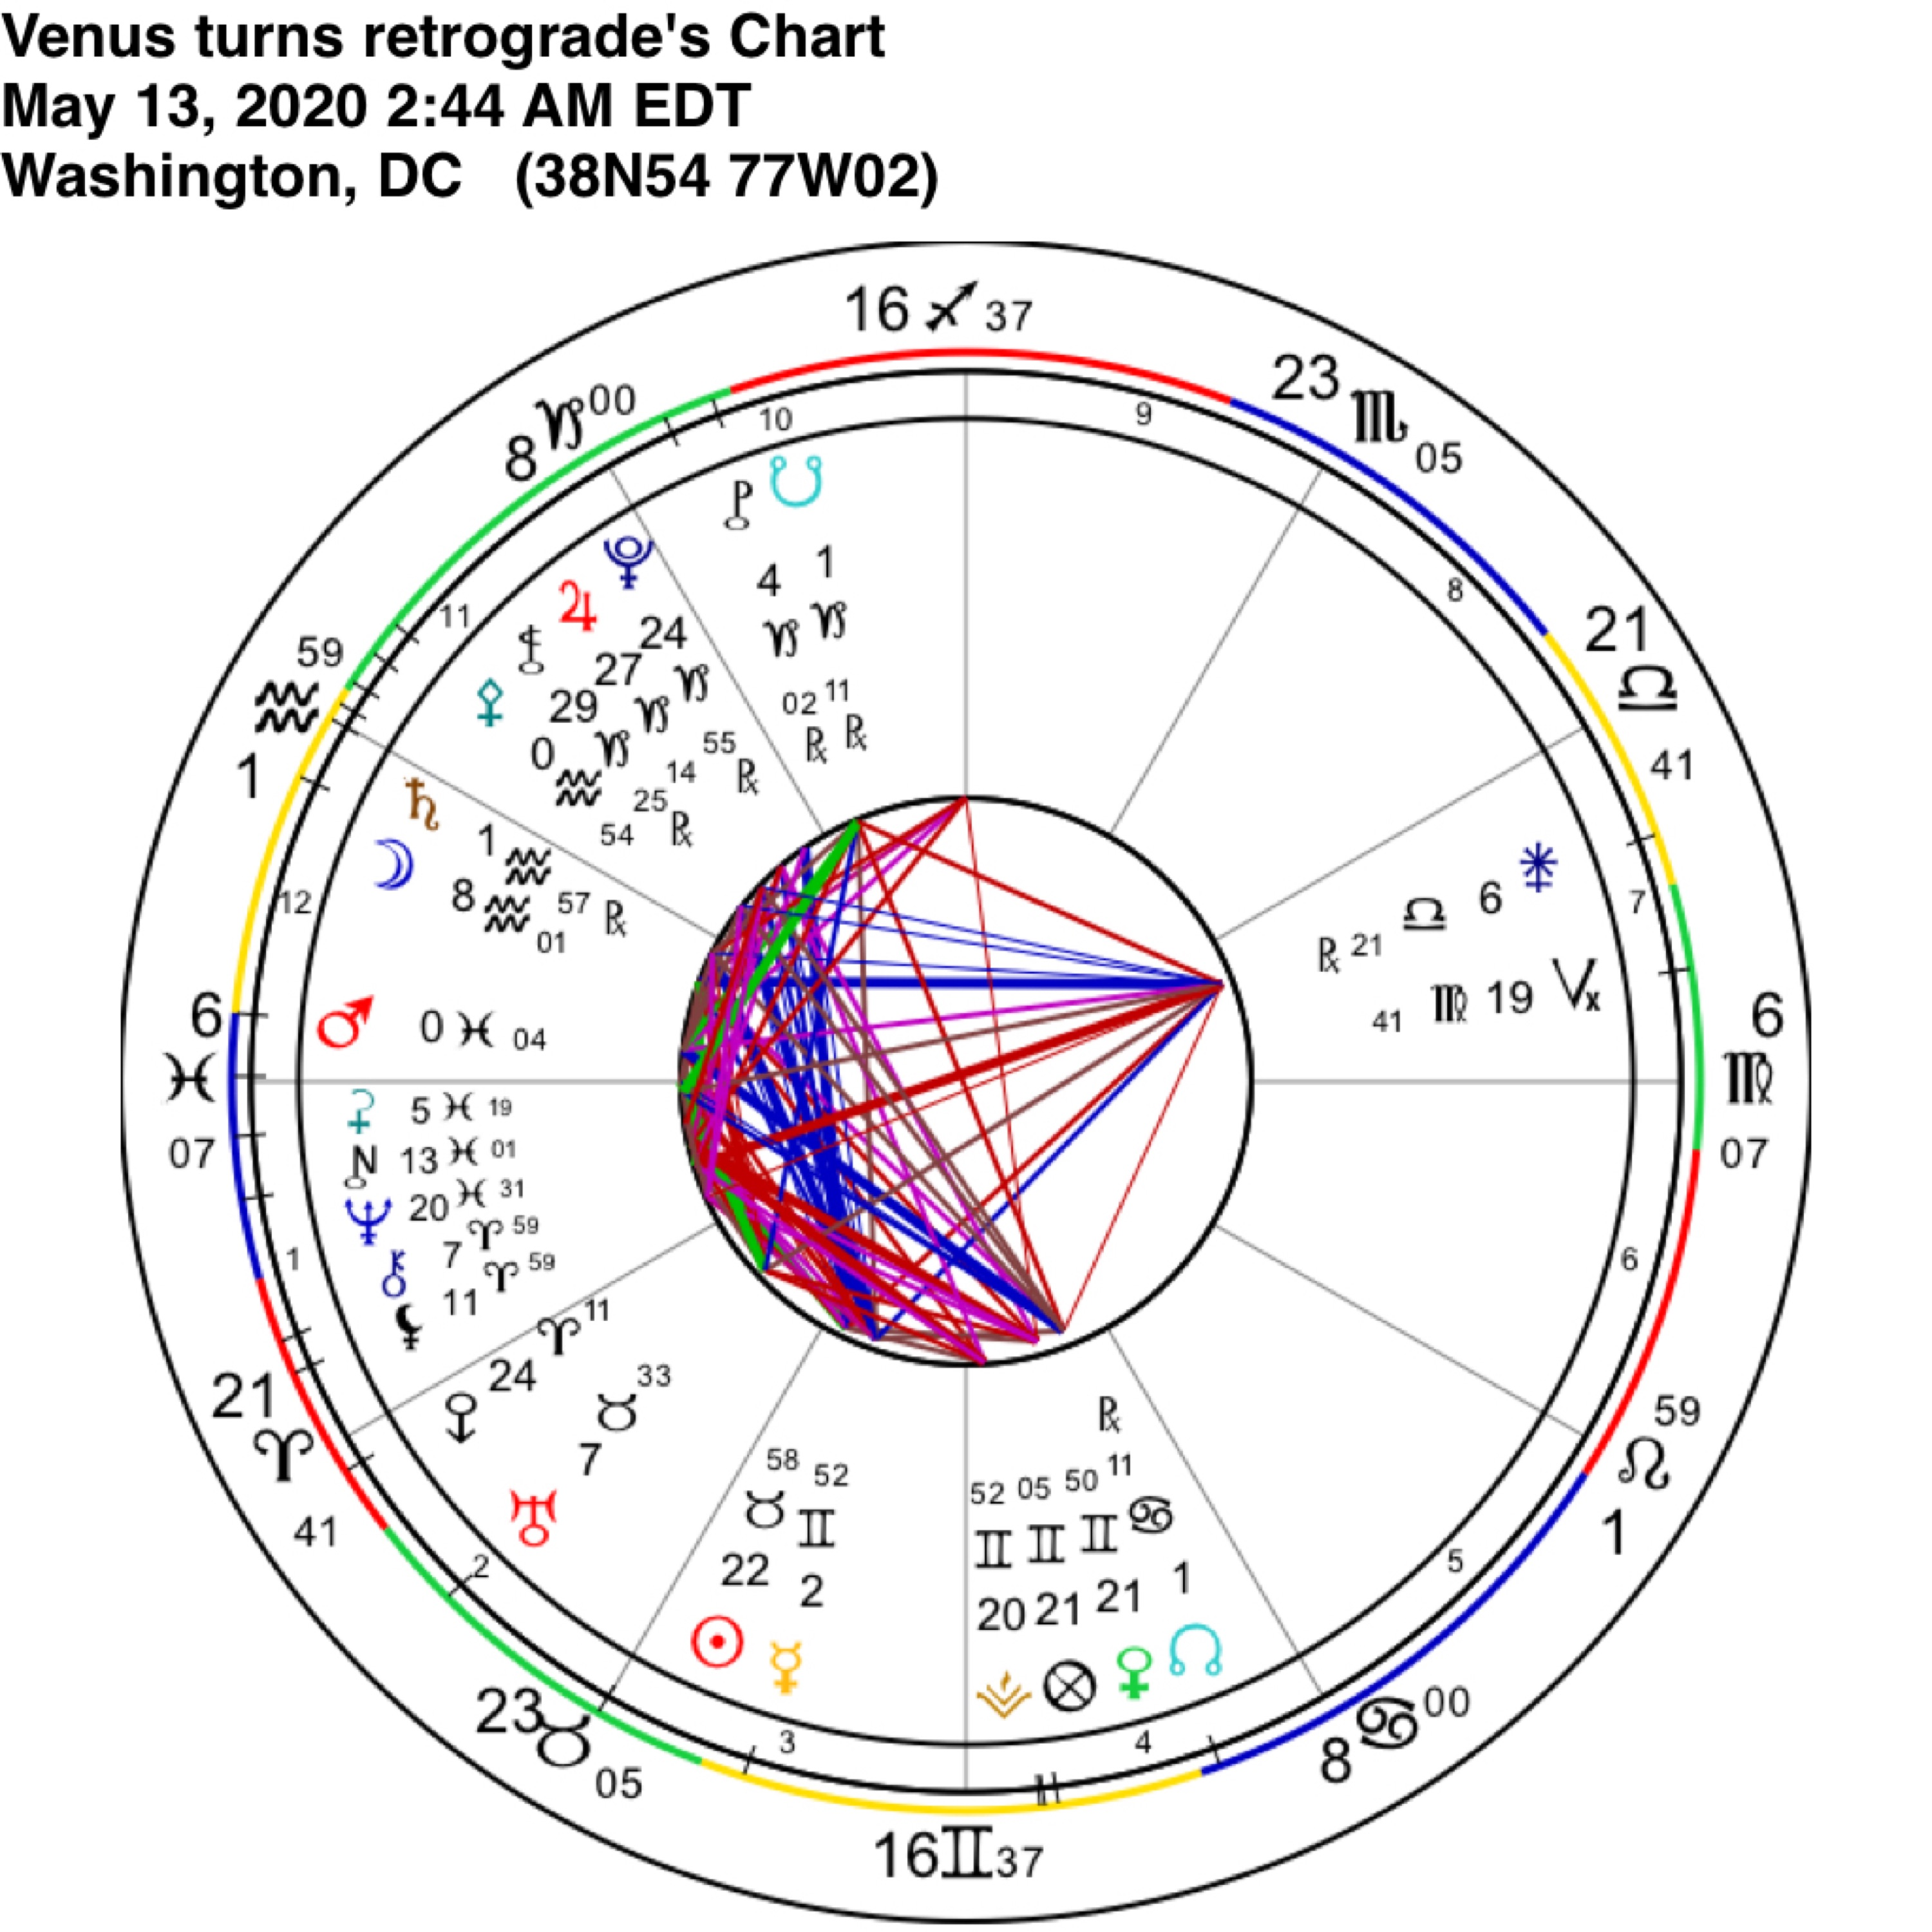 Venus turns Retrograde May 13 2020